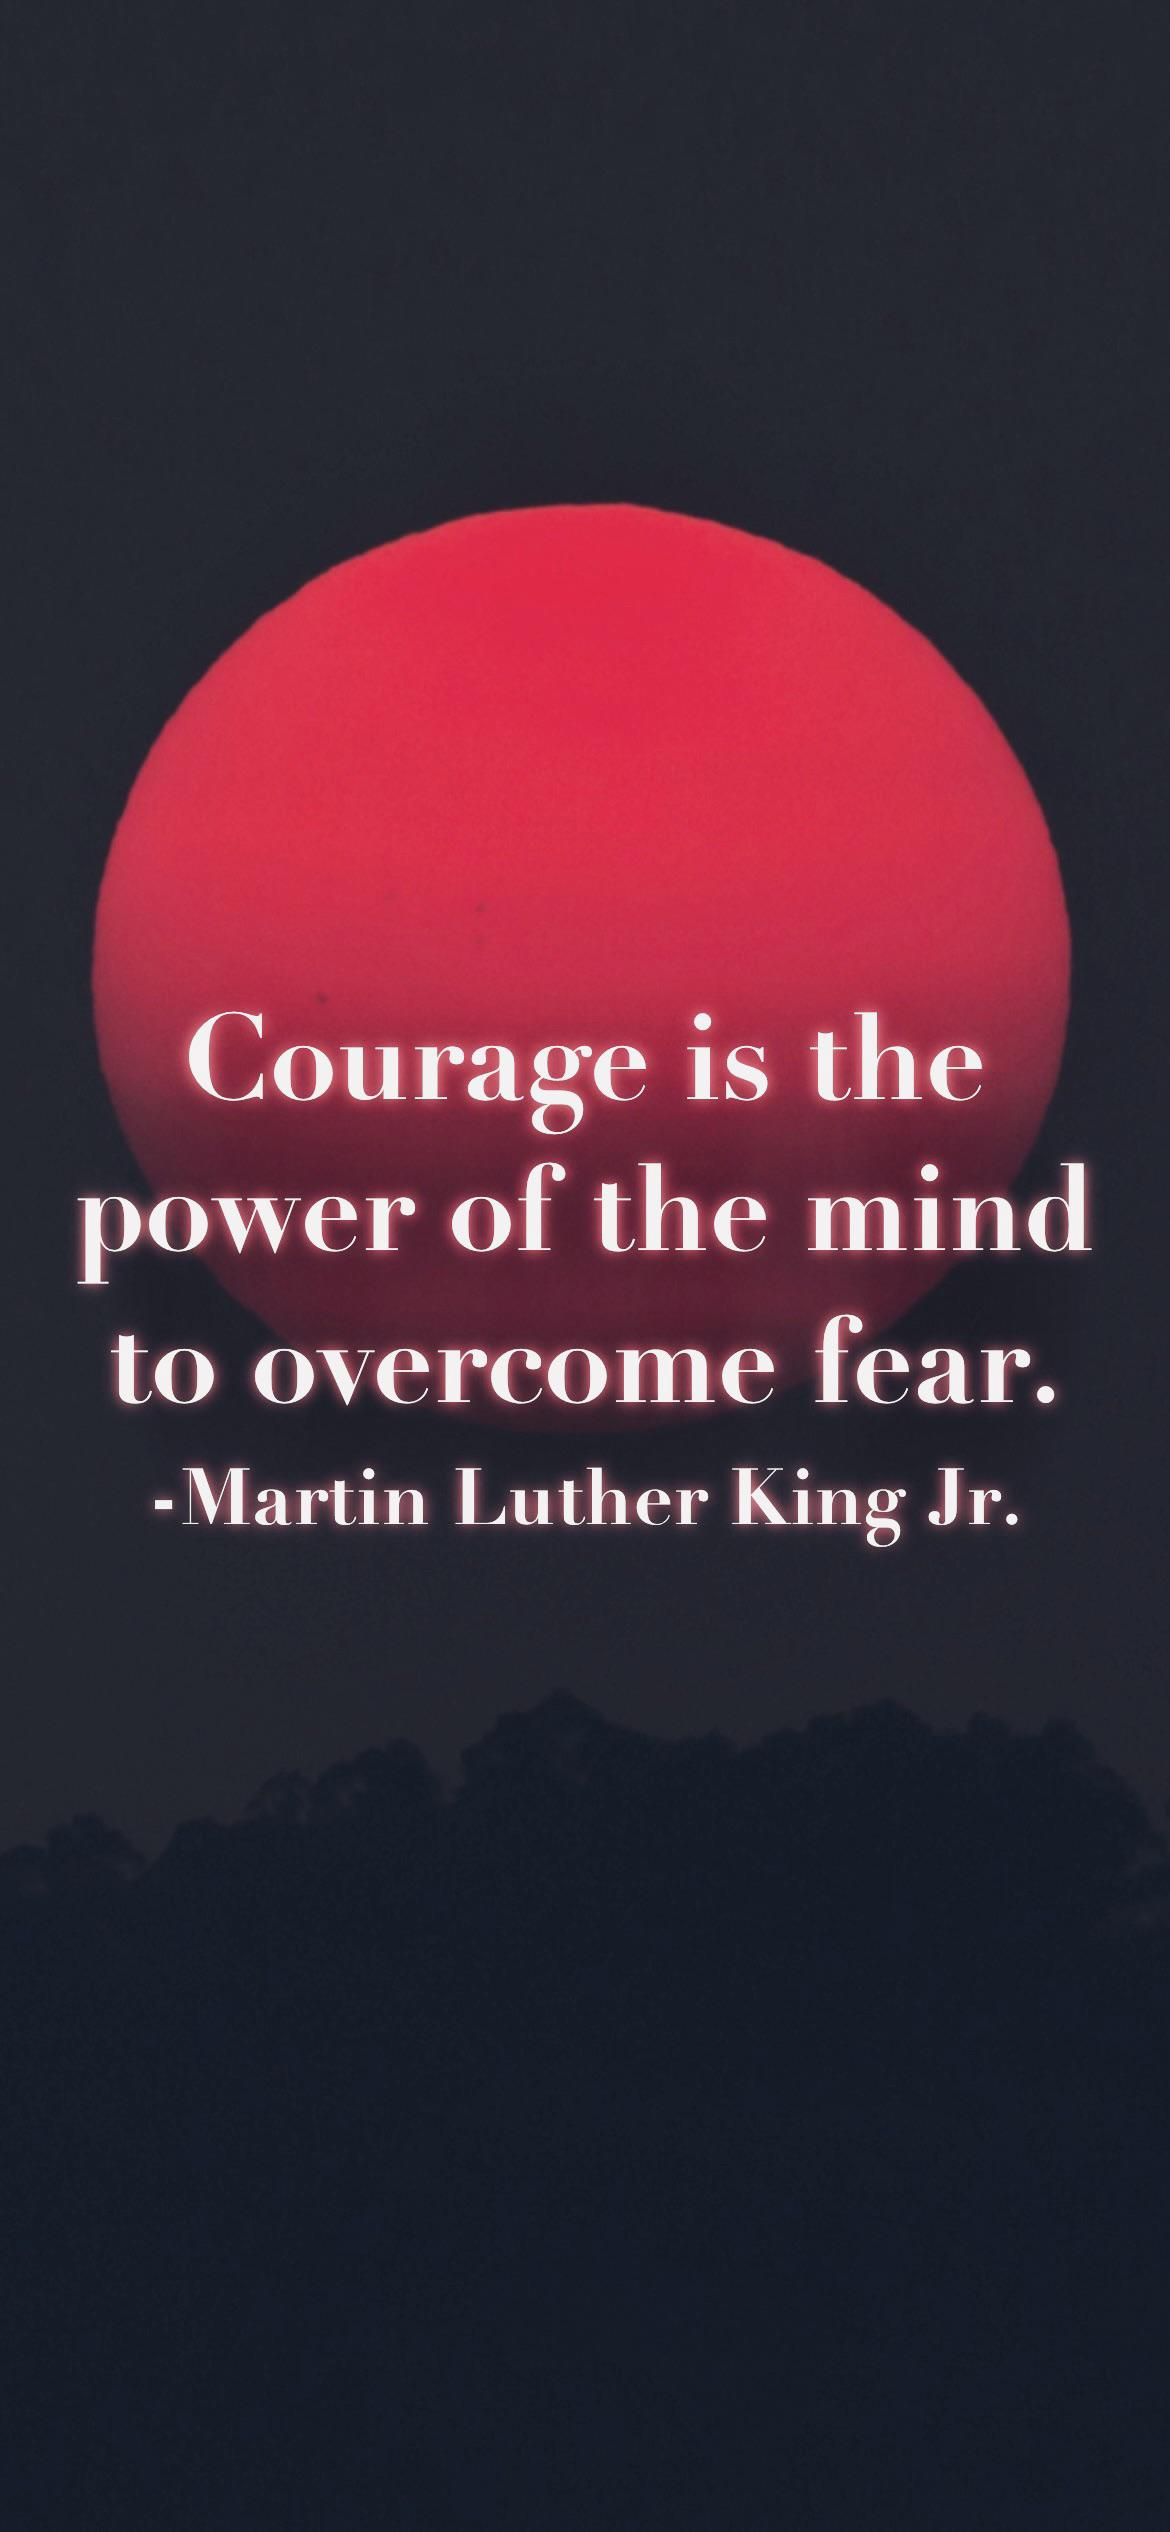 Courage is the power of the mind to overcome fear. -Martin Luther King Jr. [2532 x 1170p]